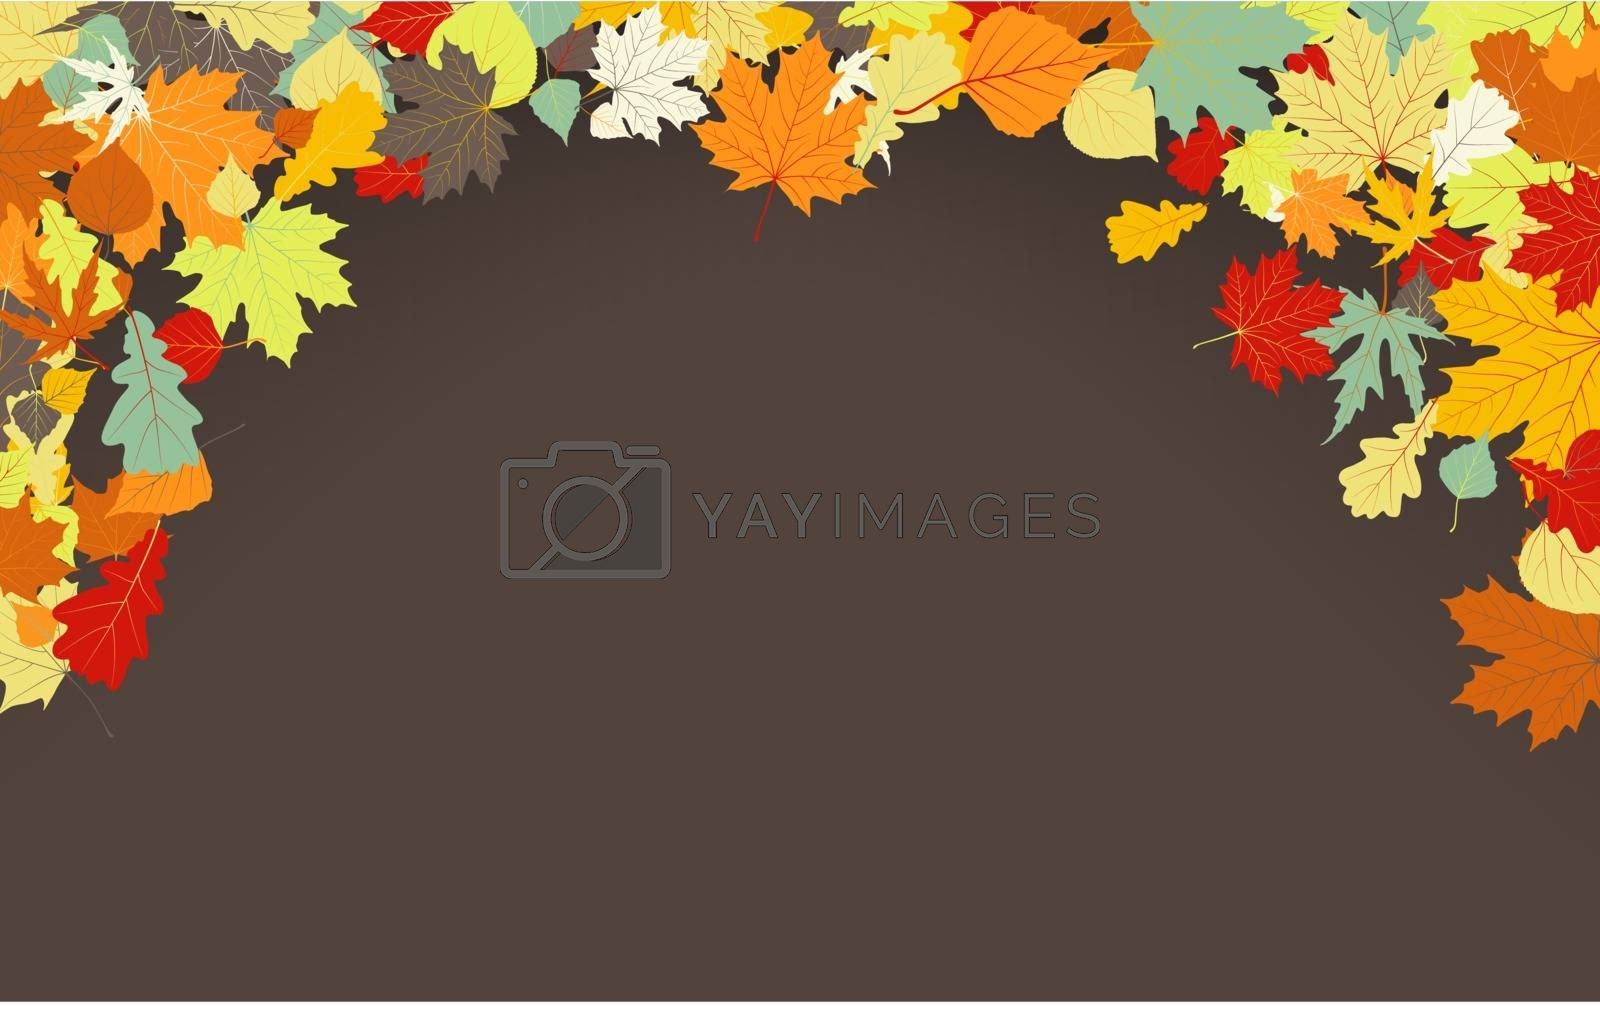 Brown autumnal background. EPS 8 vector file included